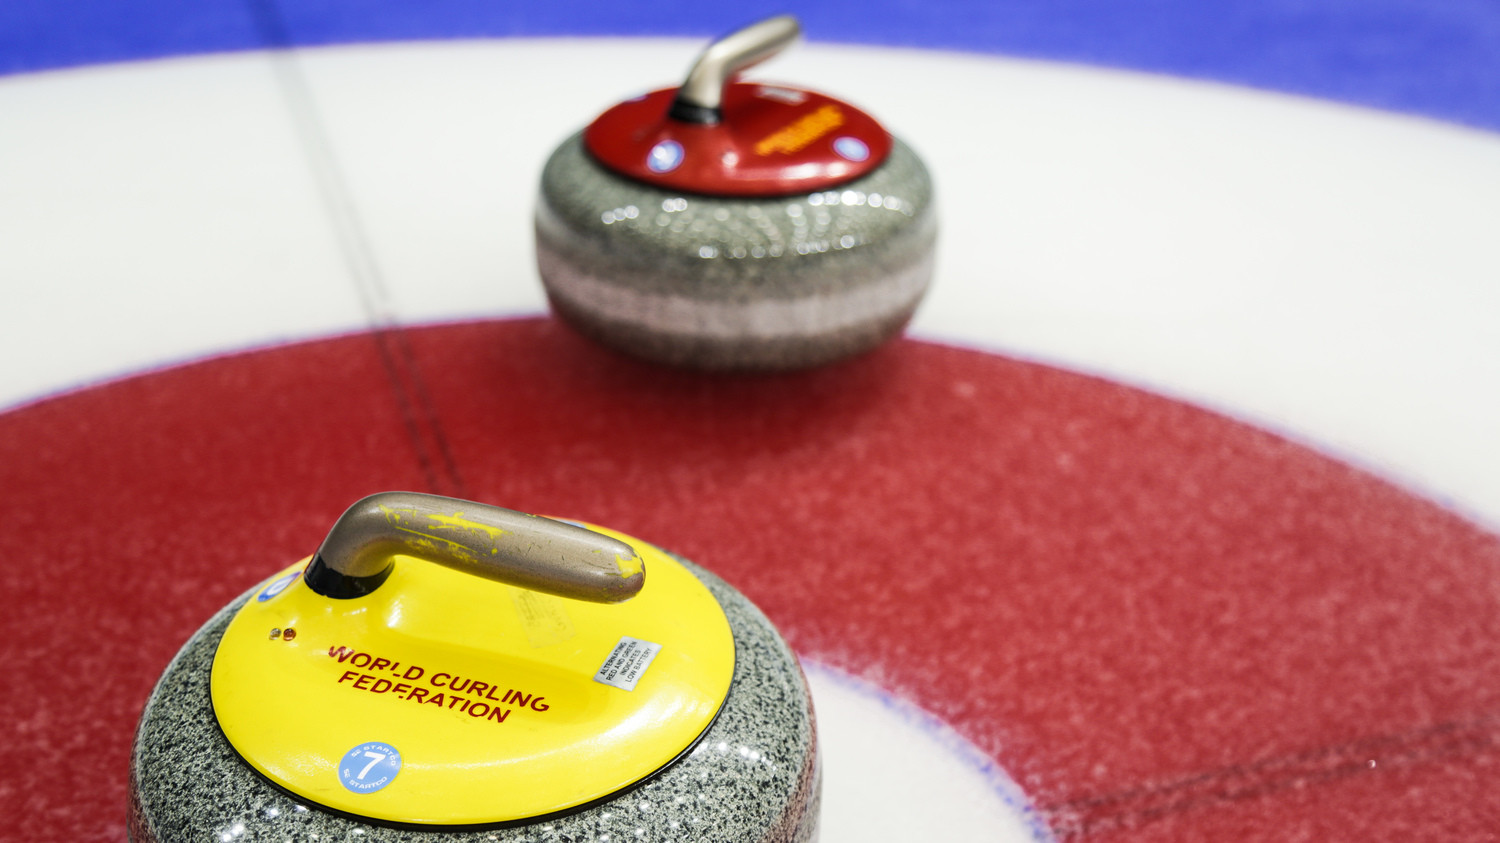 2020 World Curling Championships will not be rescheduled because of coronavirus pandemic